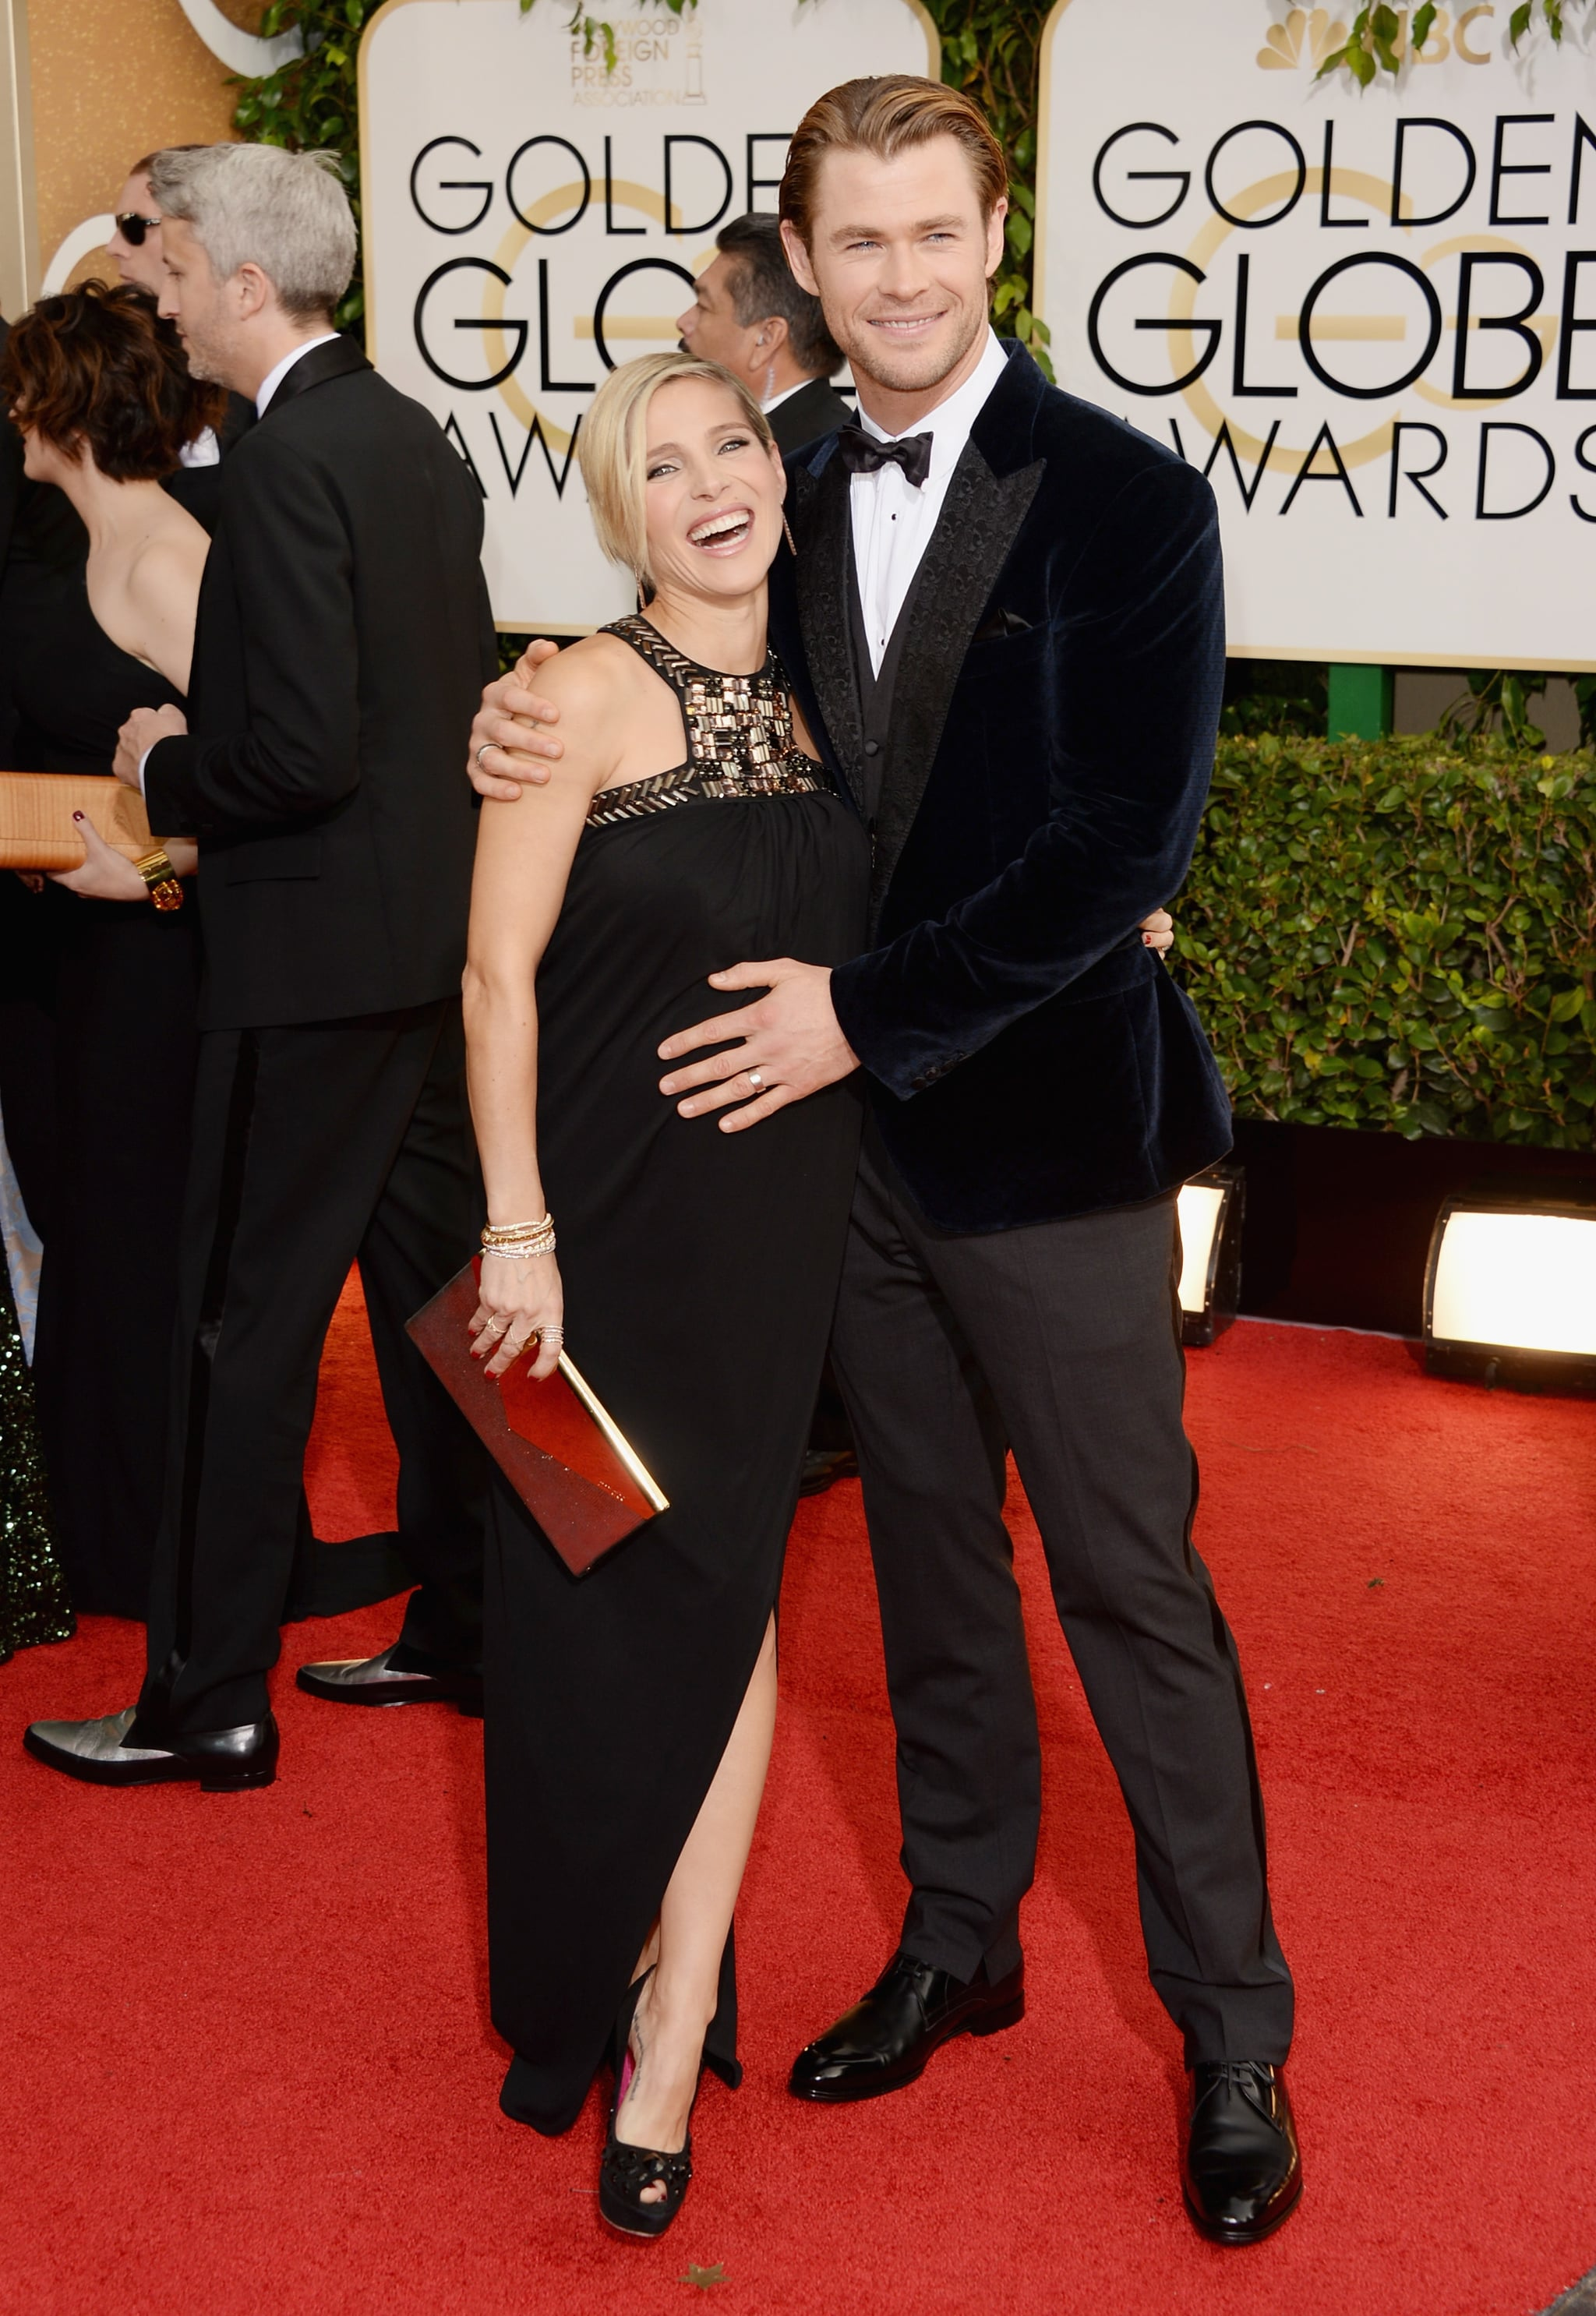 Chris Hemsworth and Elsa Pataky showed sweet PDA on the Golden Globes red carpet.